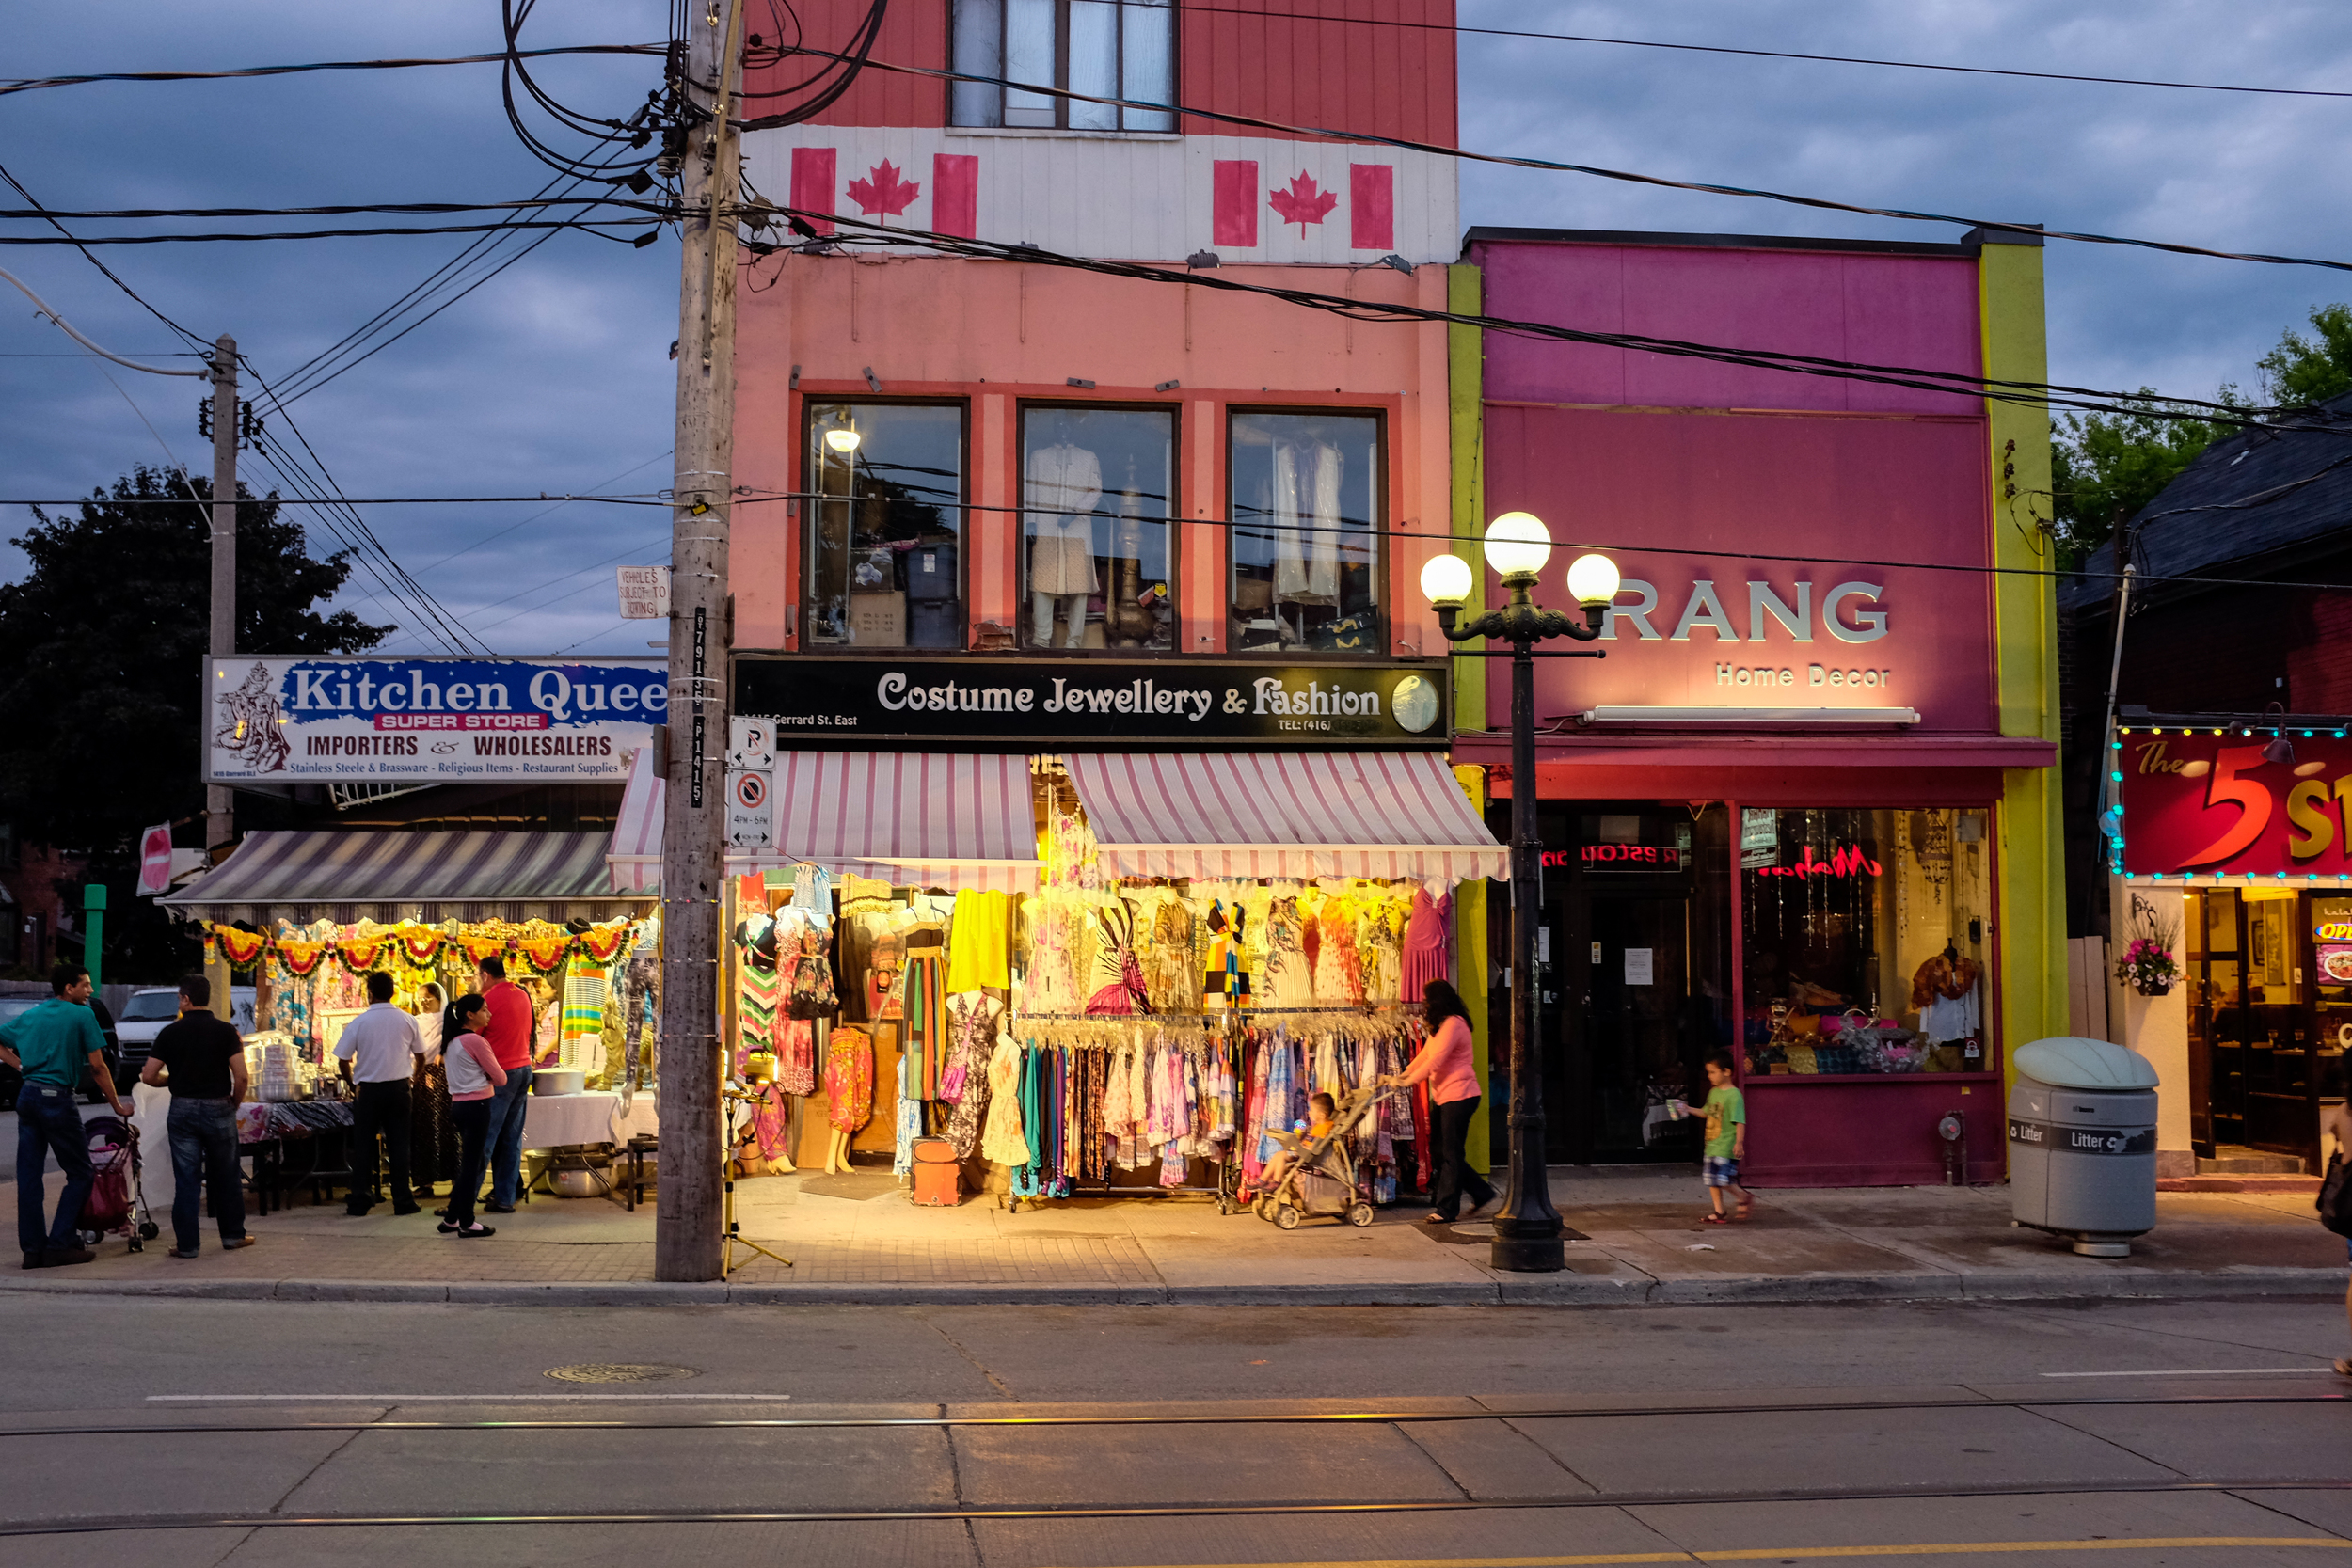 Gerrard Street East in Toronto, Ontario, shot at 1/40, f4 at ISO 1600.